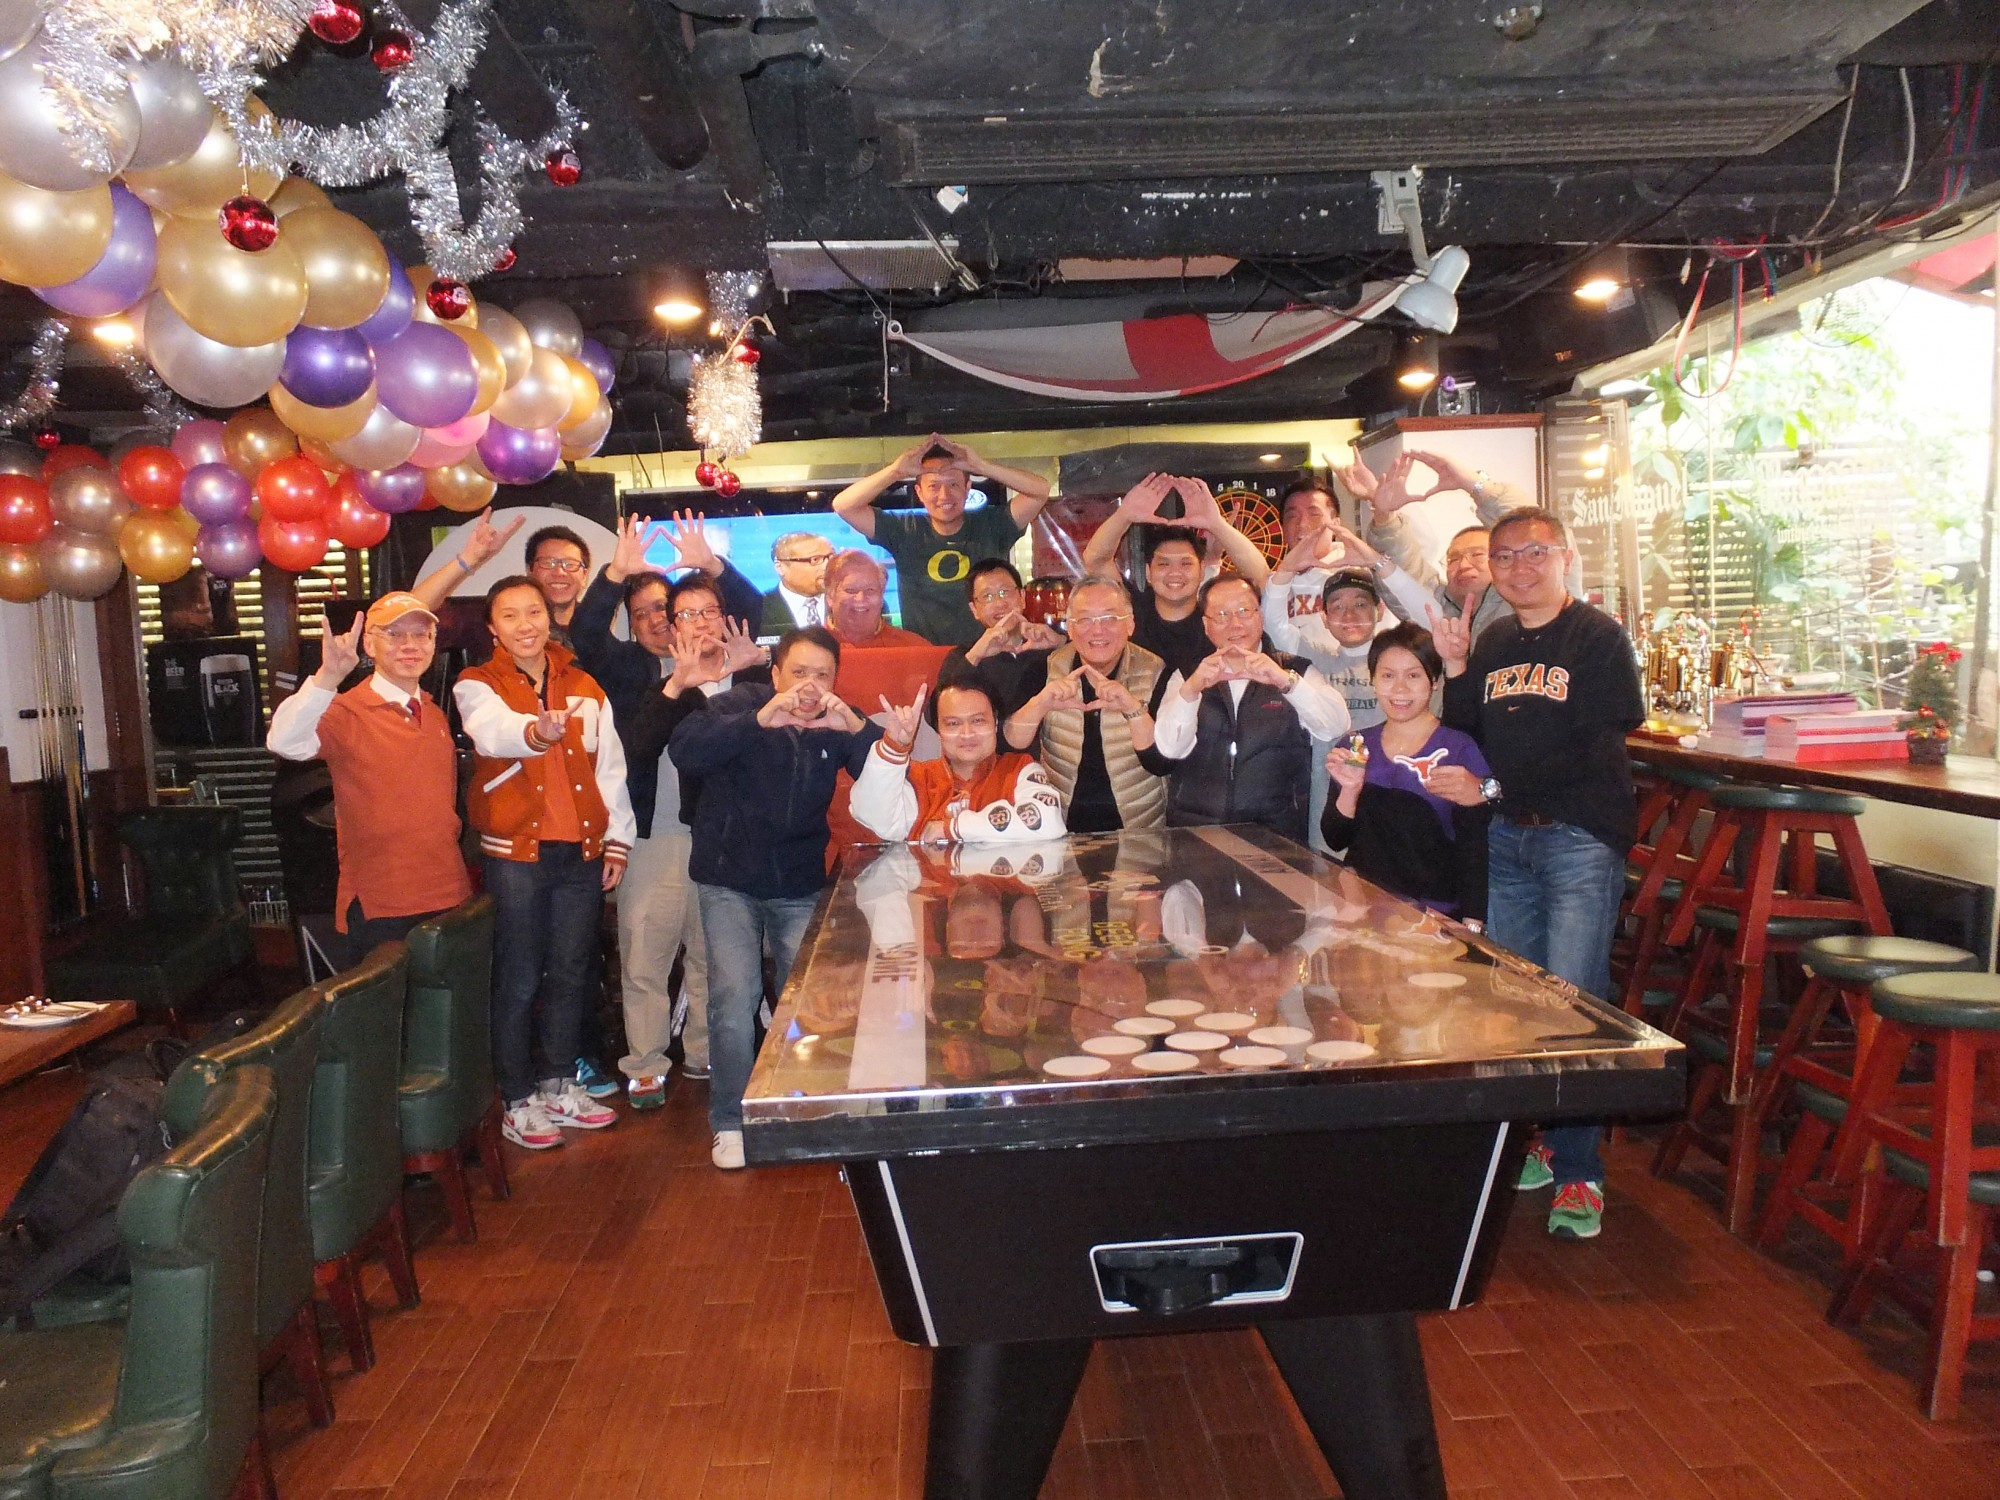 Texas Bowl Game Live Watching + New Year's Eve Party